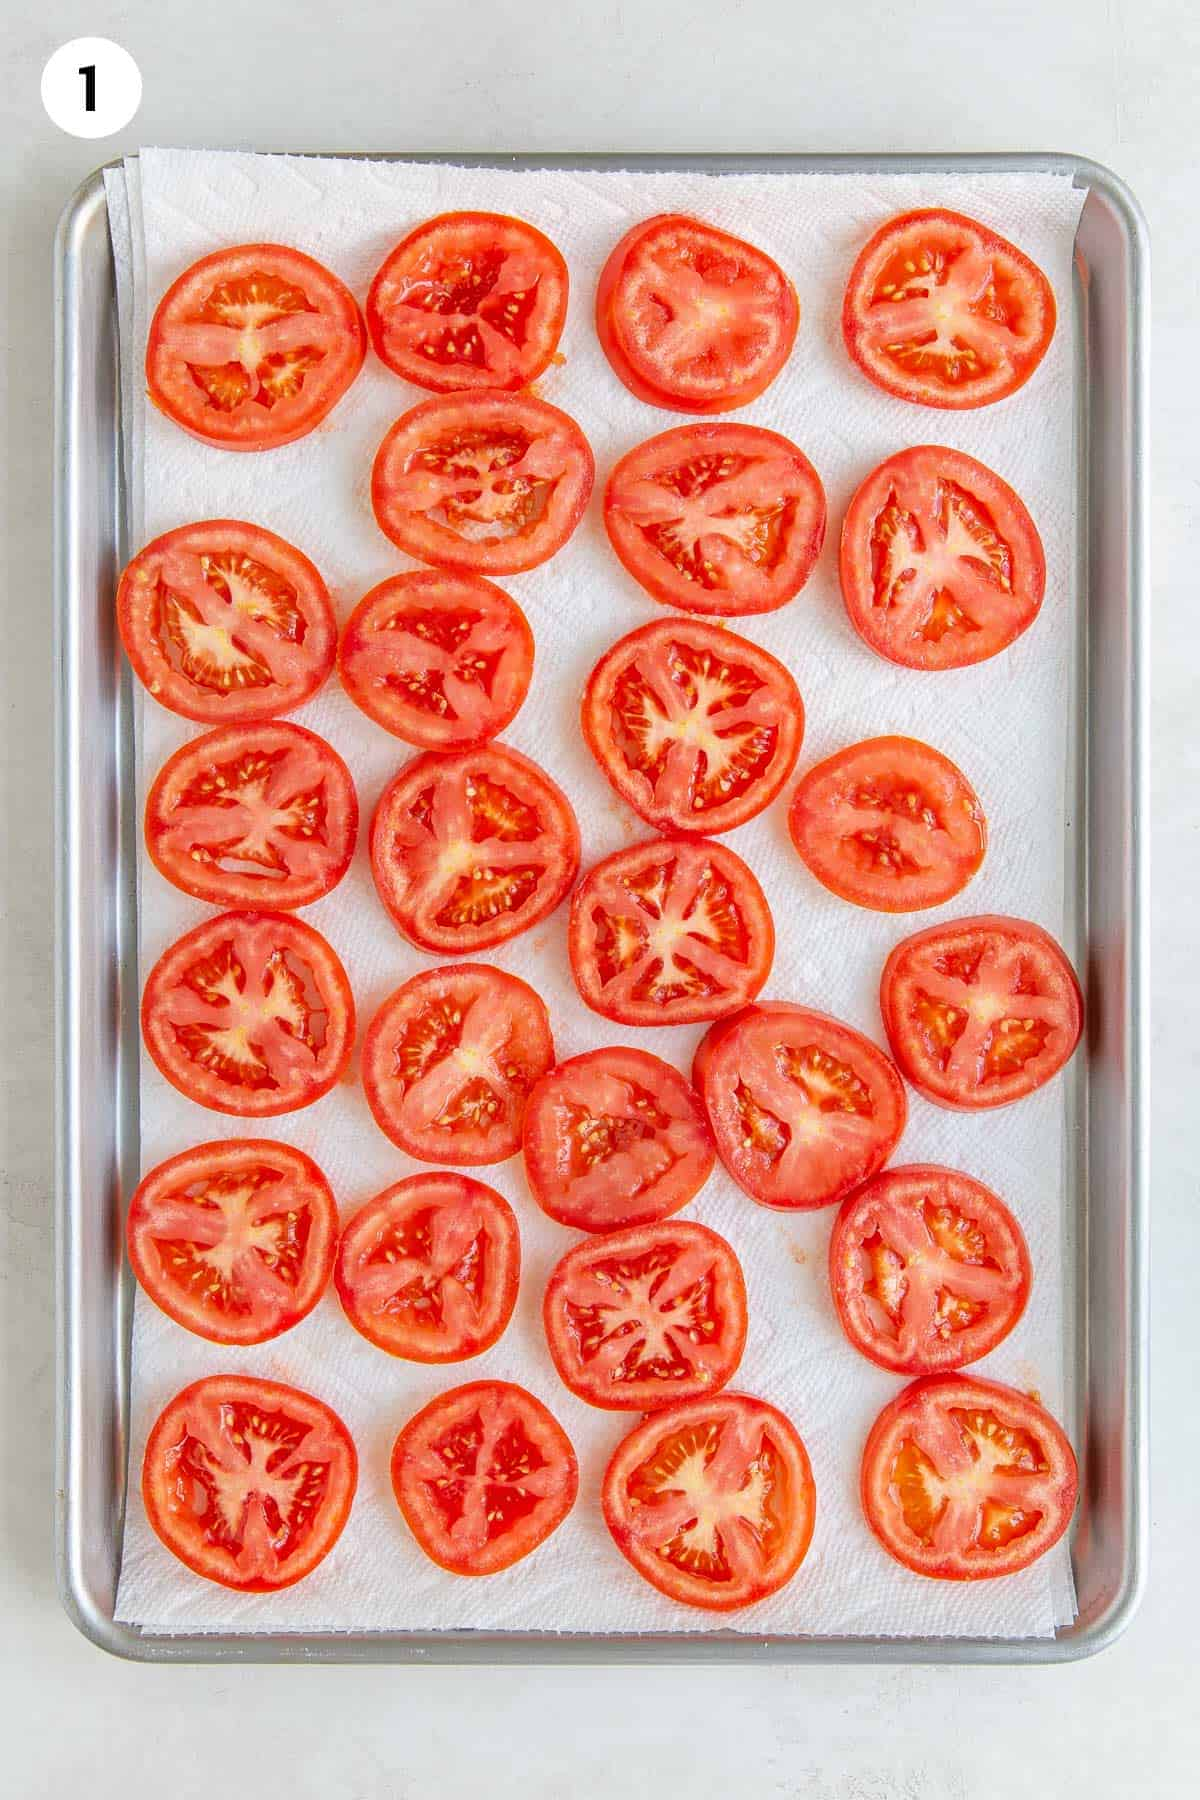 Overhead view of sliced tomatoes draining on paper towels on a baking sheet.